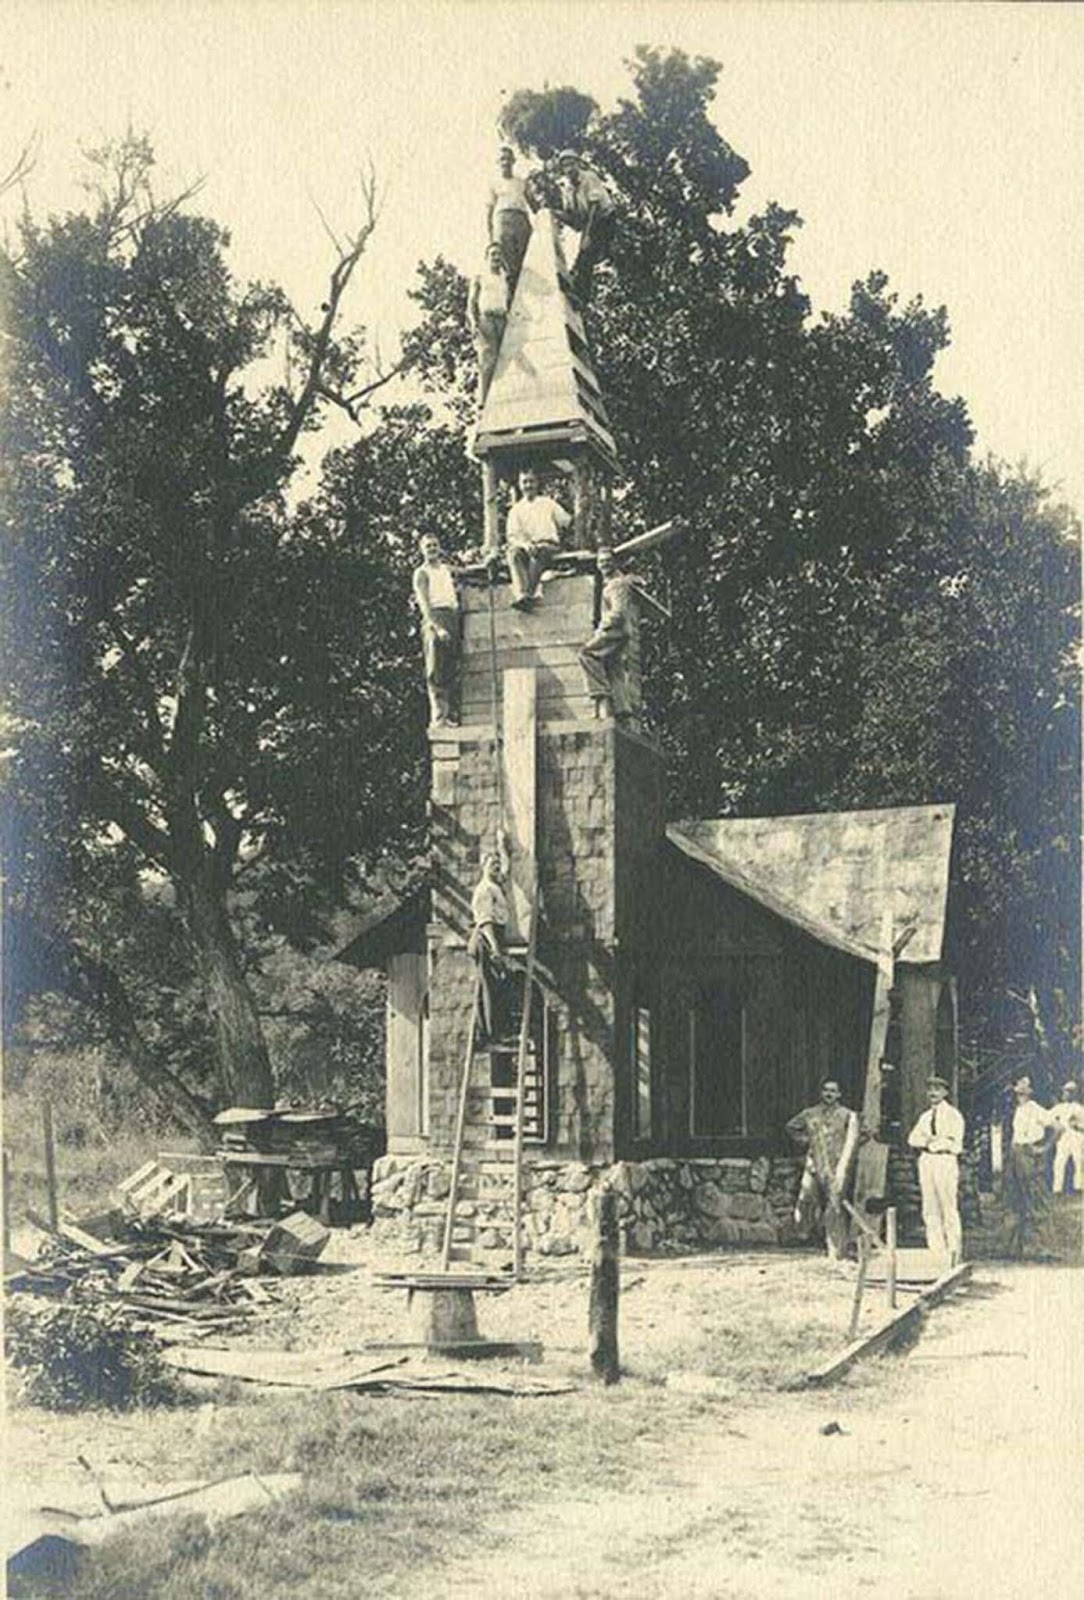 Internees work on the construction of a church in the camp village.